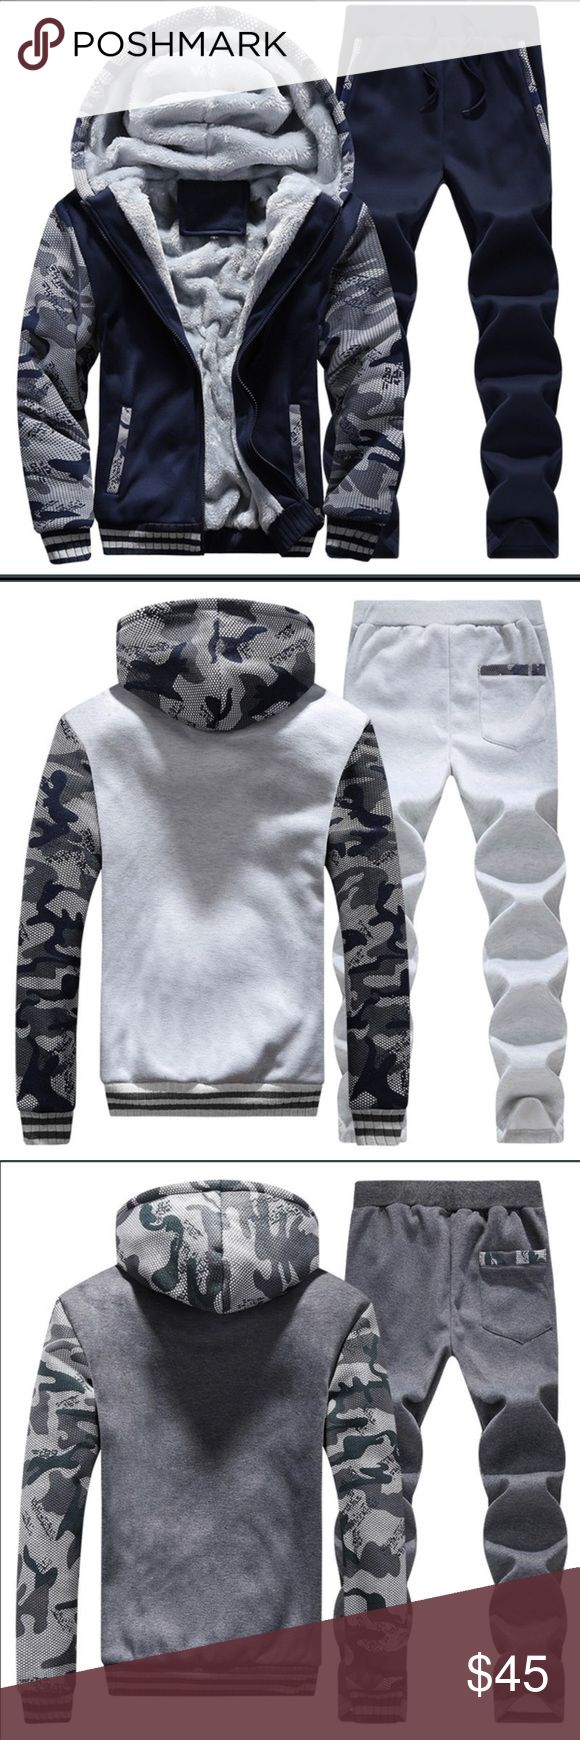 Men warm sports tracksuit Hello my dear friend, before you order it, please check the size details carefully.  This is the Asian size:M,L,XL,XXL,XXXL,4XL It is smaller than US size and EU size, so please check your body size and order plus size will be better and fit correctly. Thanks.  Material:Polyester,Cotton  Set:Hoody + Pant  Color:Gray,Black,Red,Blue,Dark blue  Suit Season:Spring,Autumn, Winter Pants Sweatpants & Joggers